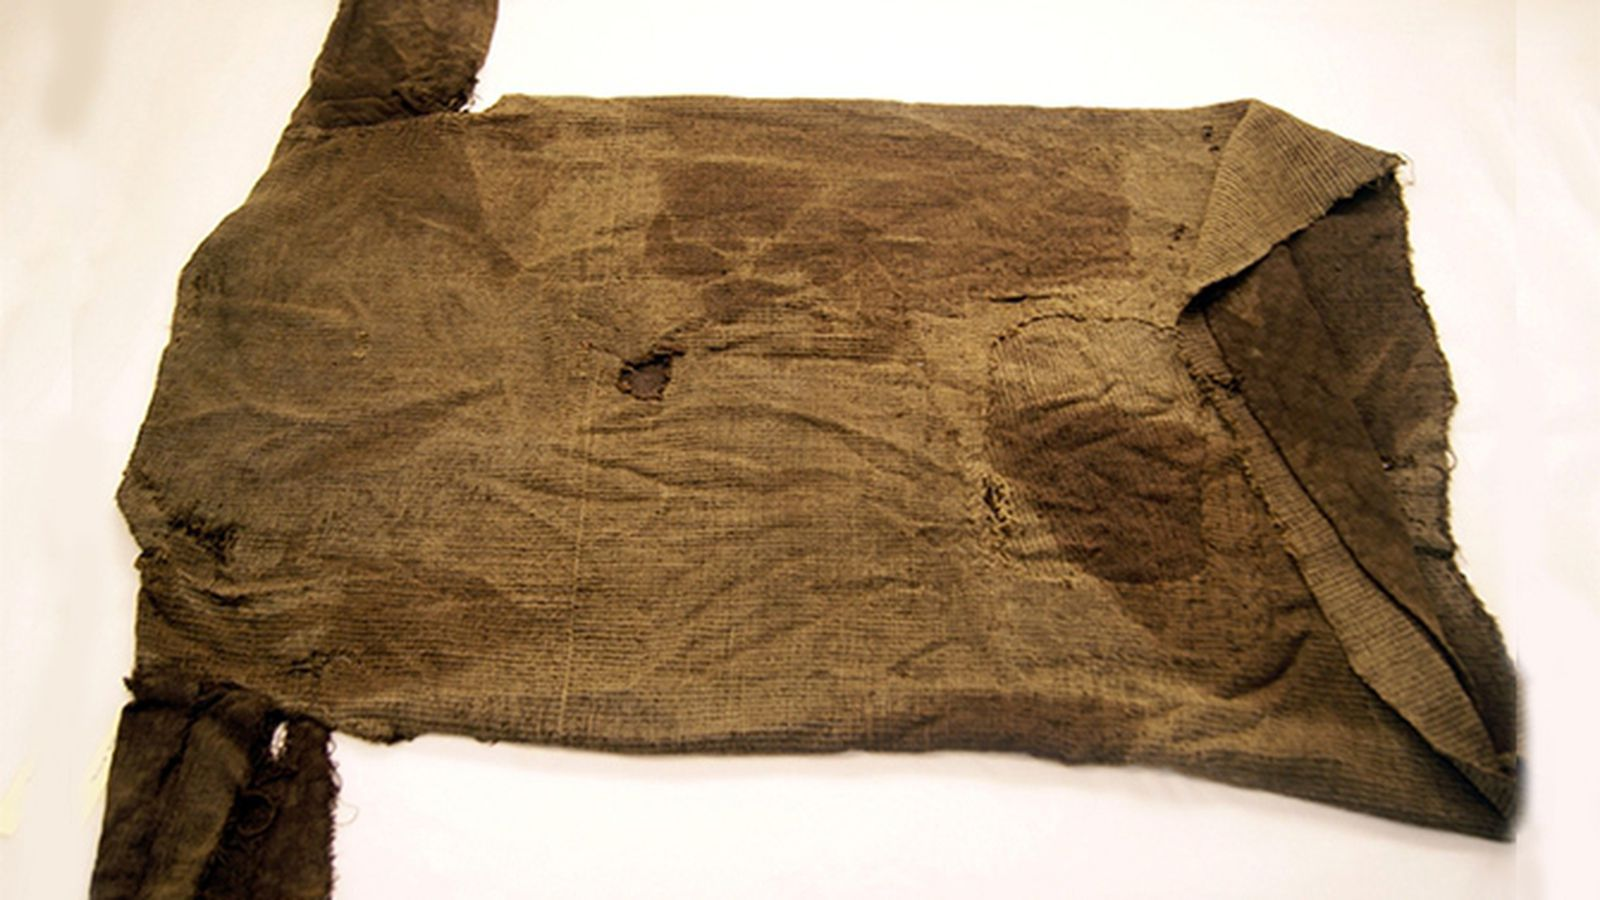 The 1,700-Year-Old Sweater